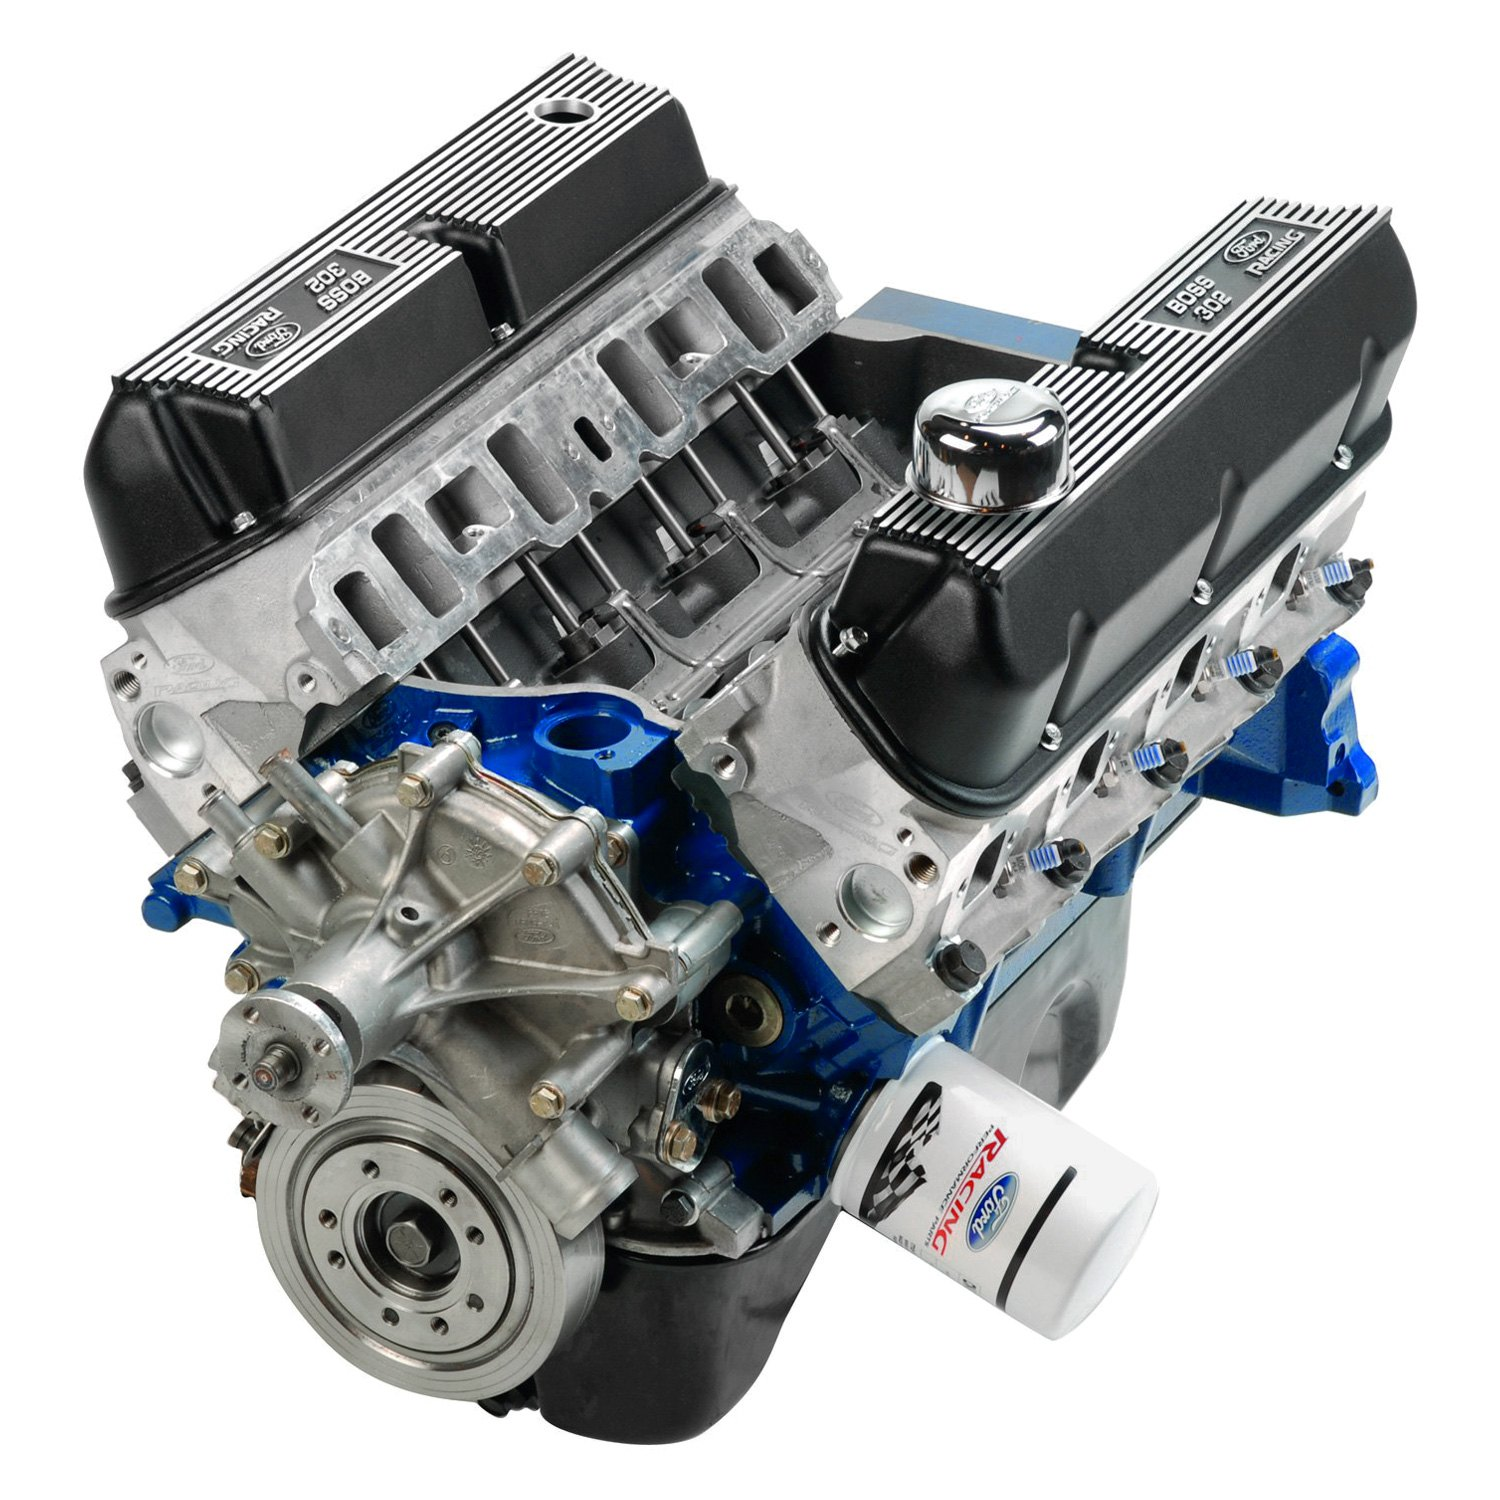 Ford performance crate engine kit for Ford stroker motor sizes